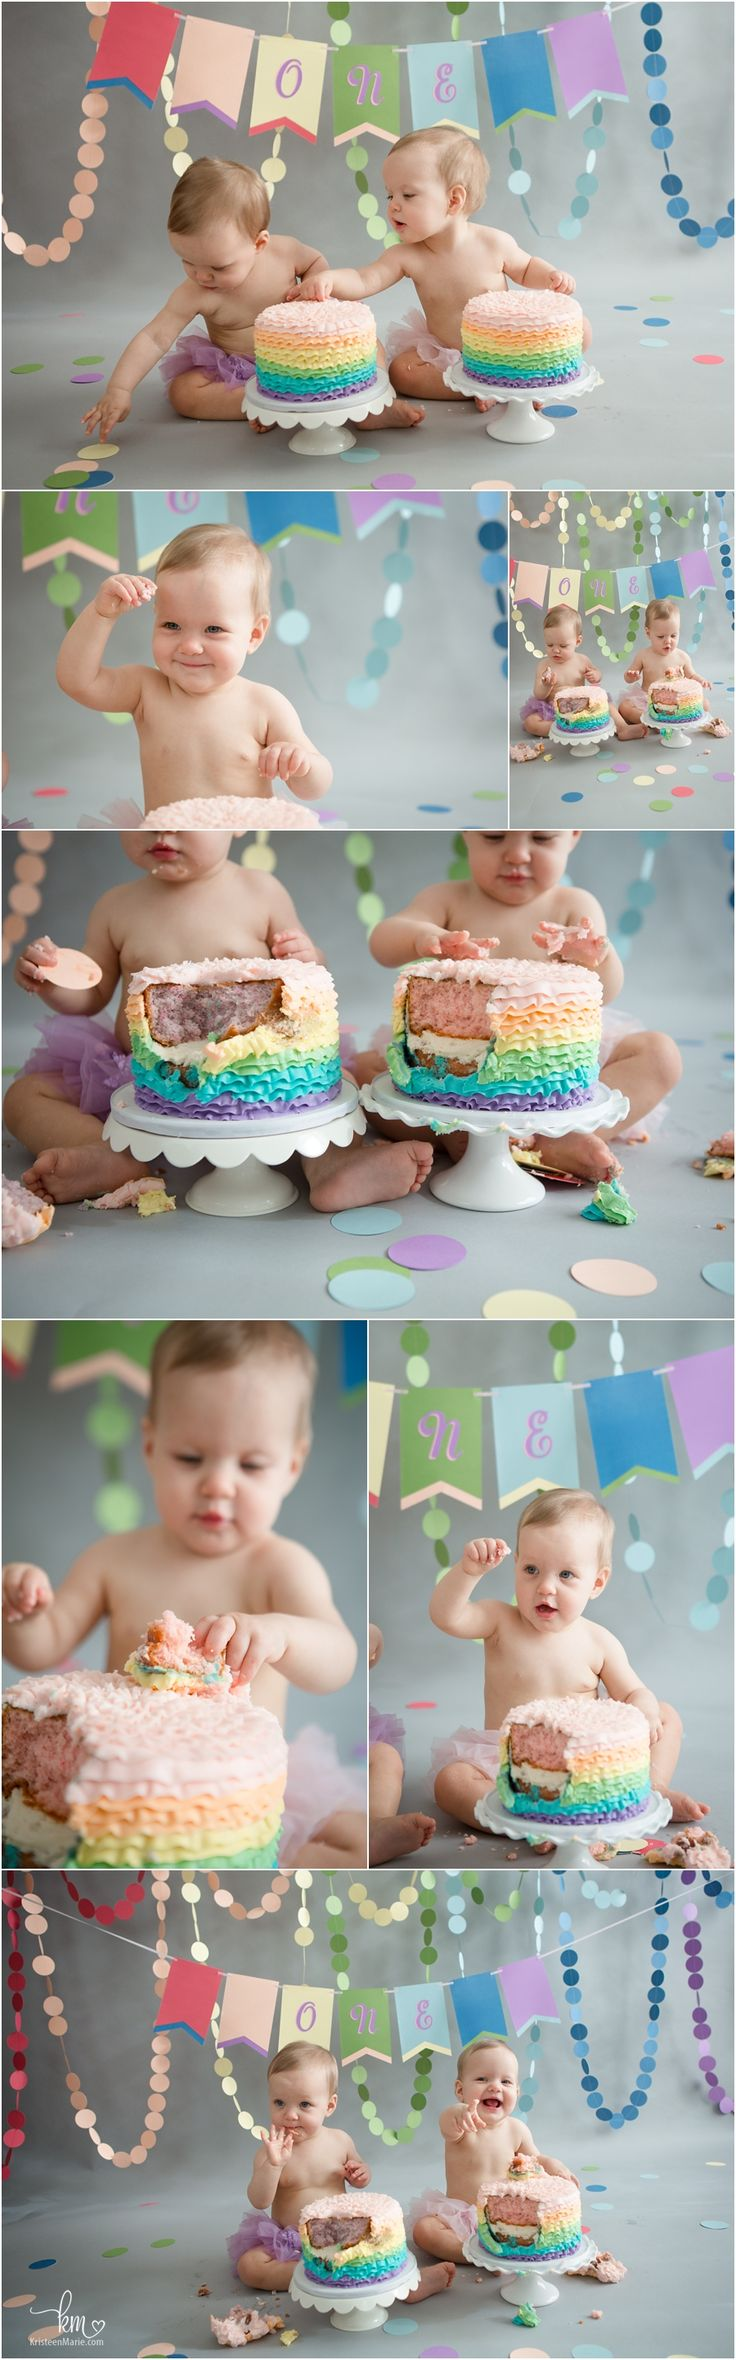 pastel rainbow themed cake smash for twin girls' first birthday party